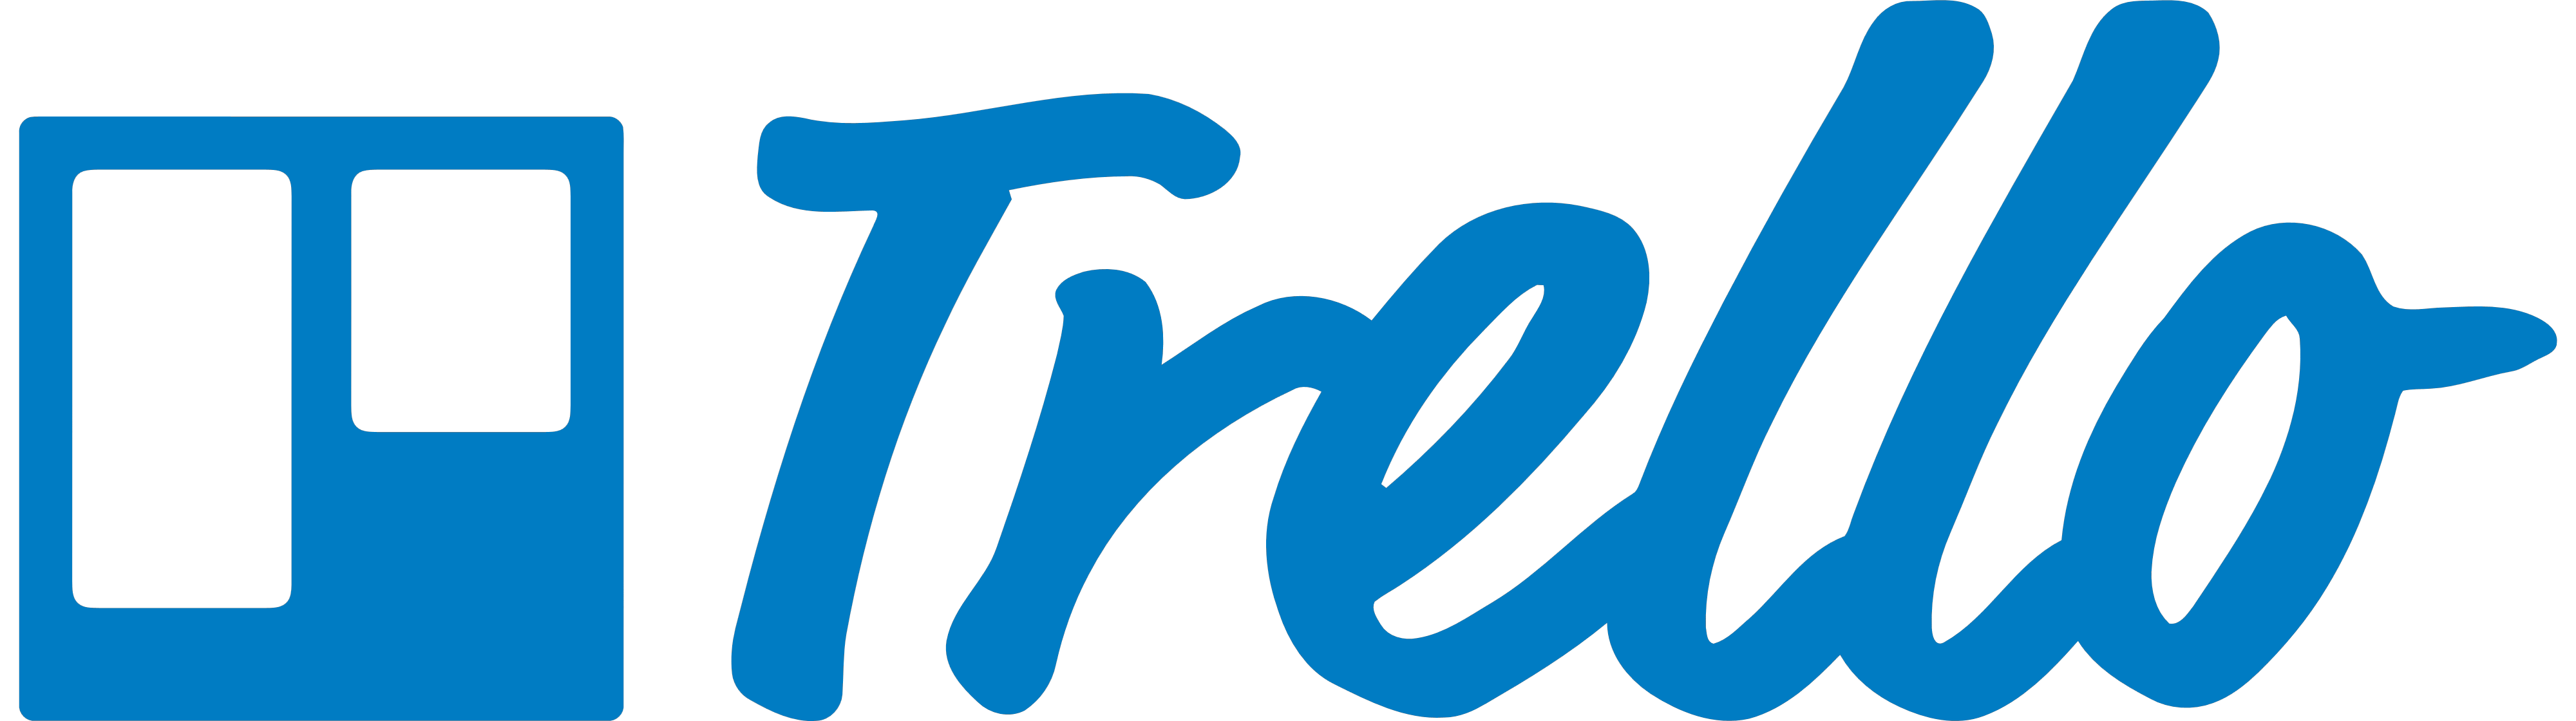 trello logo.png  58 Best Marketing Tools to Build Your Strategy in 2017 trello 20logo